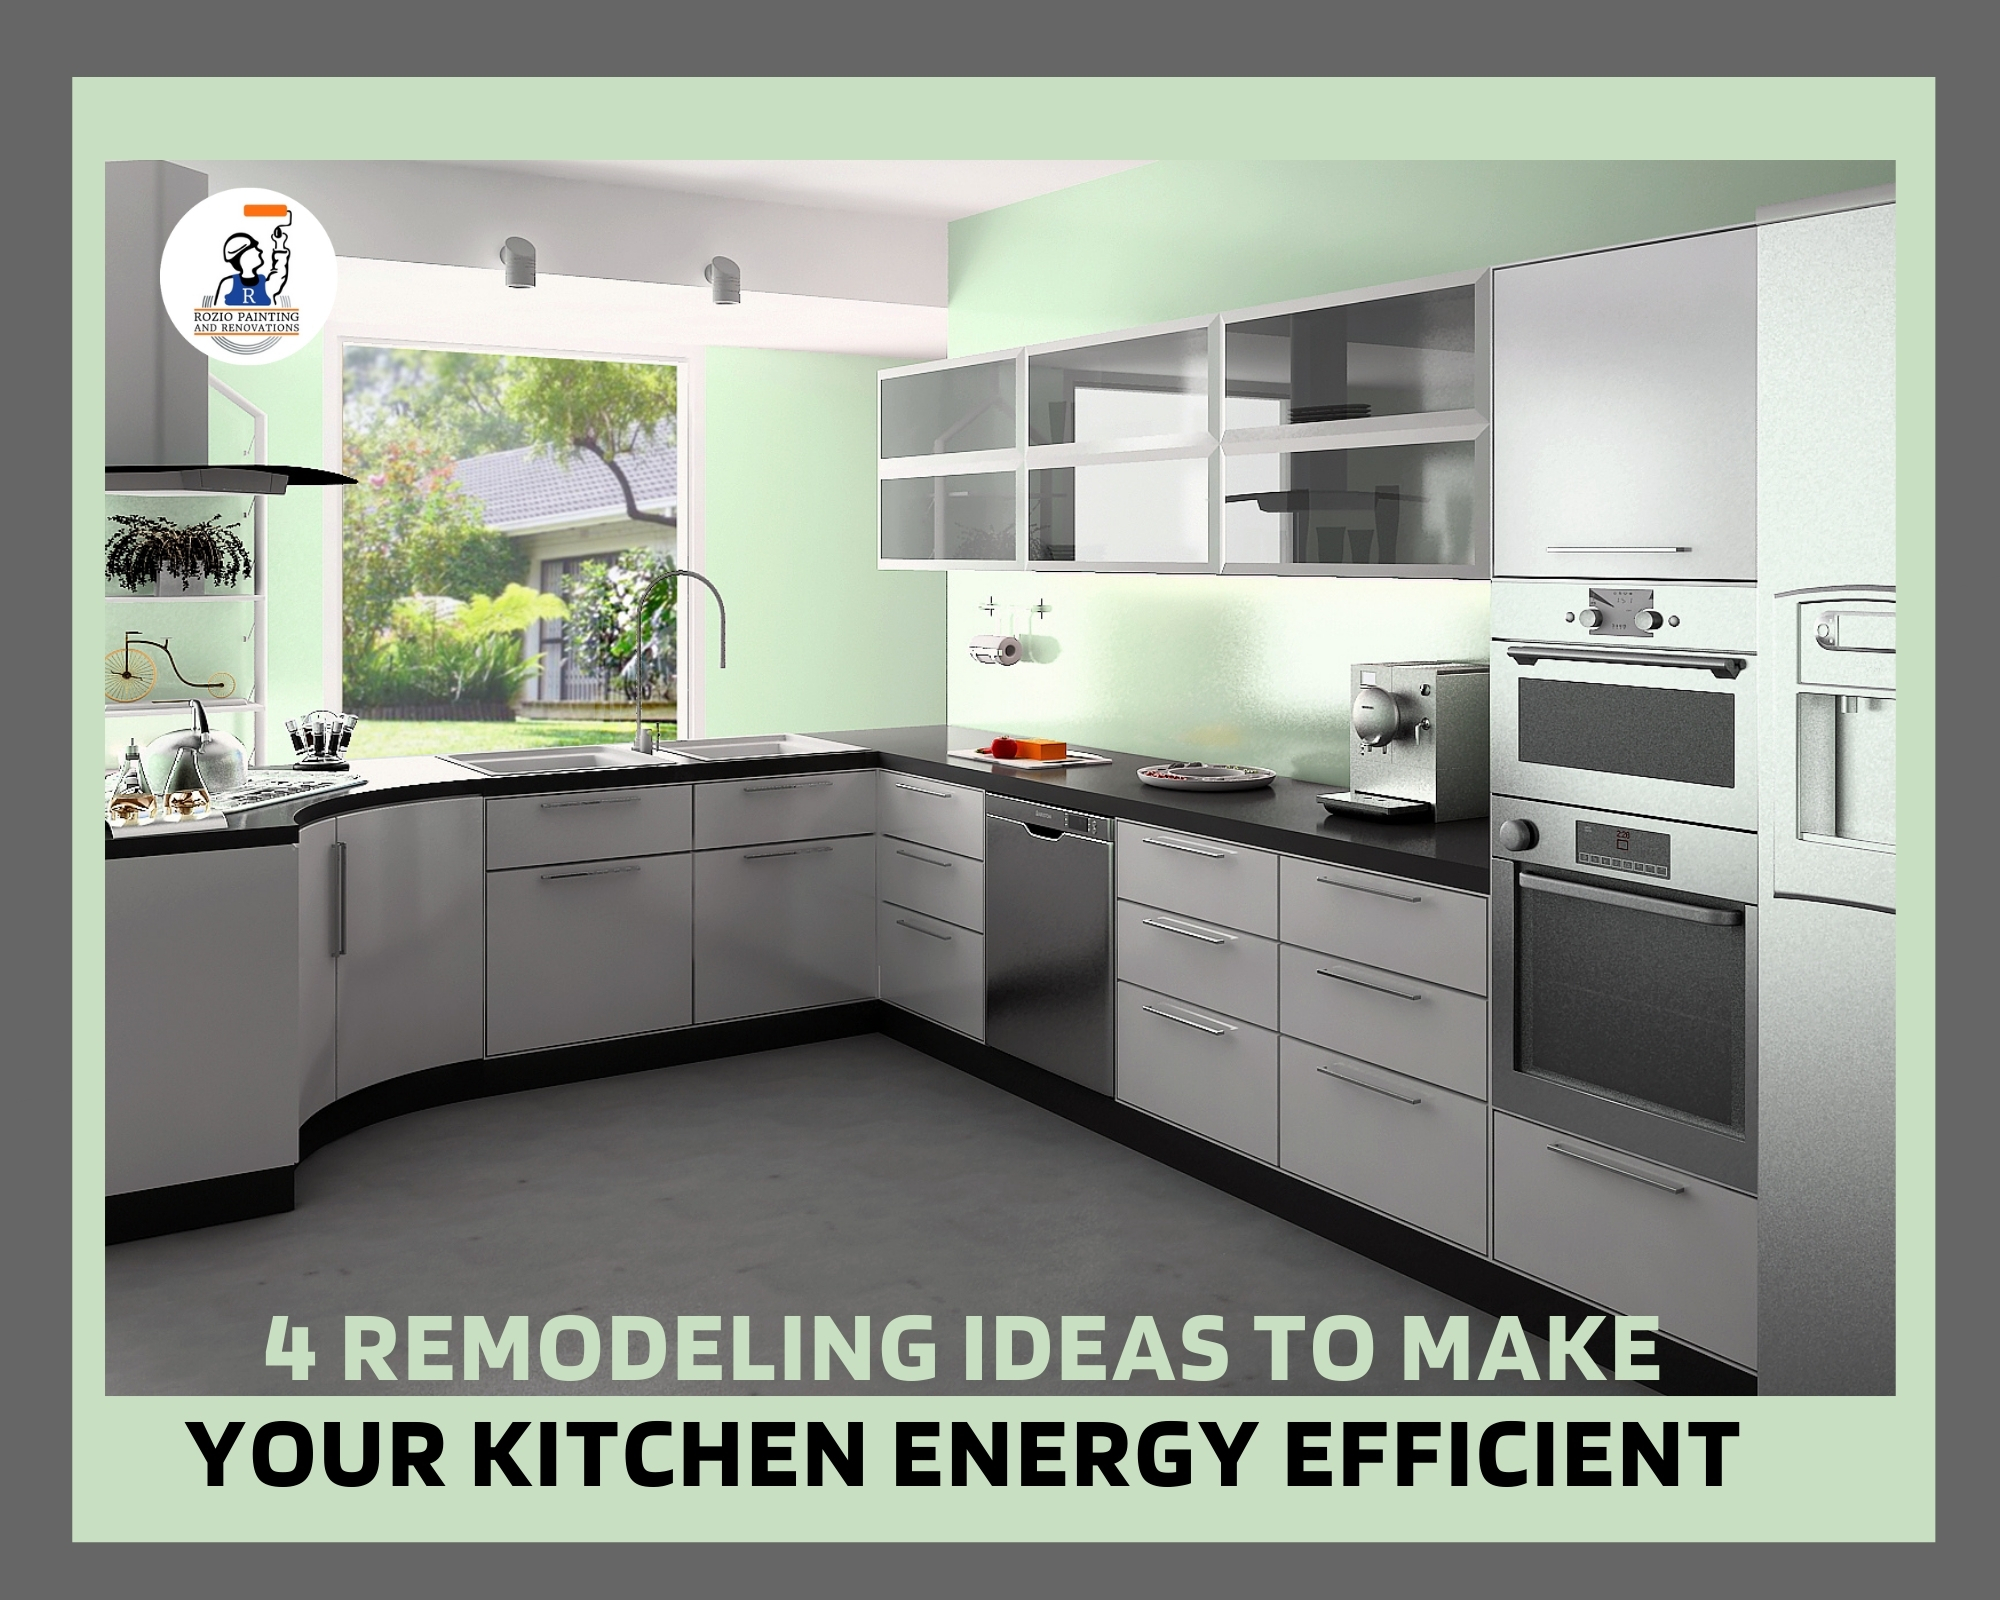 4 Remodeling Ideas To Make Your Kitchen Energy Efficient